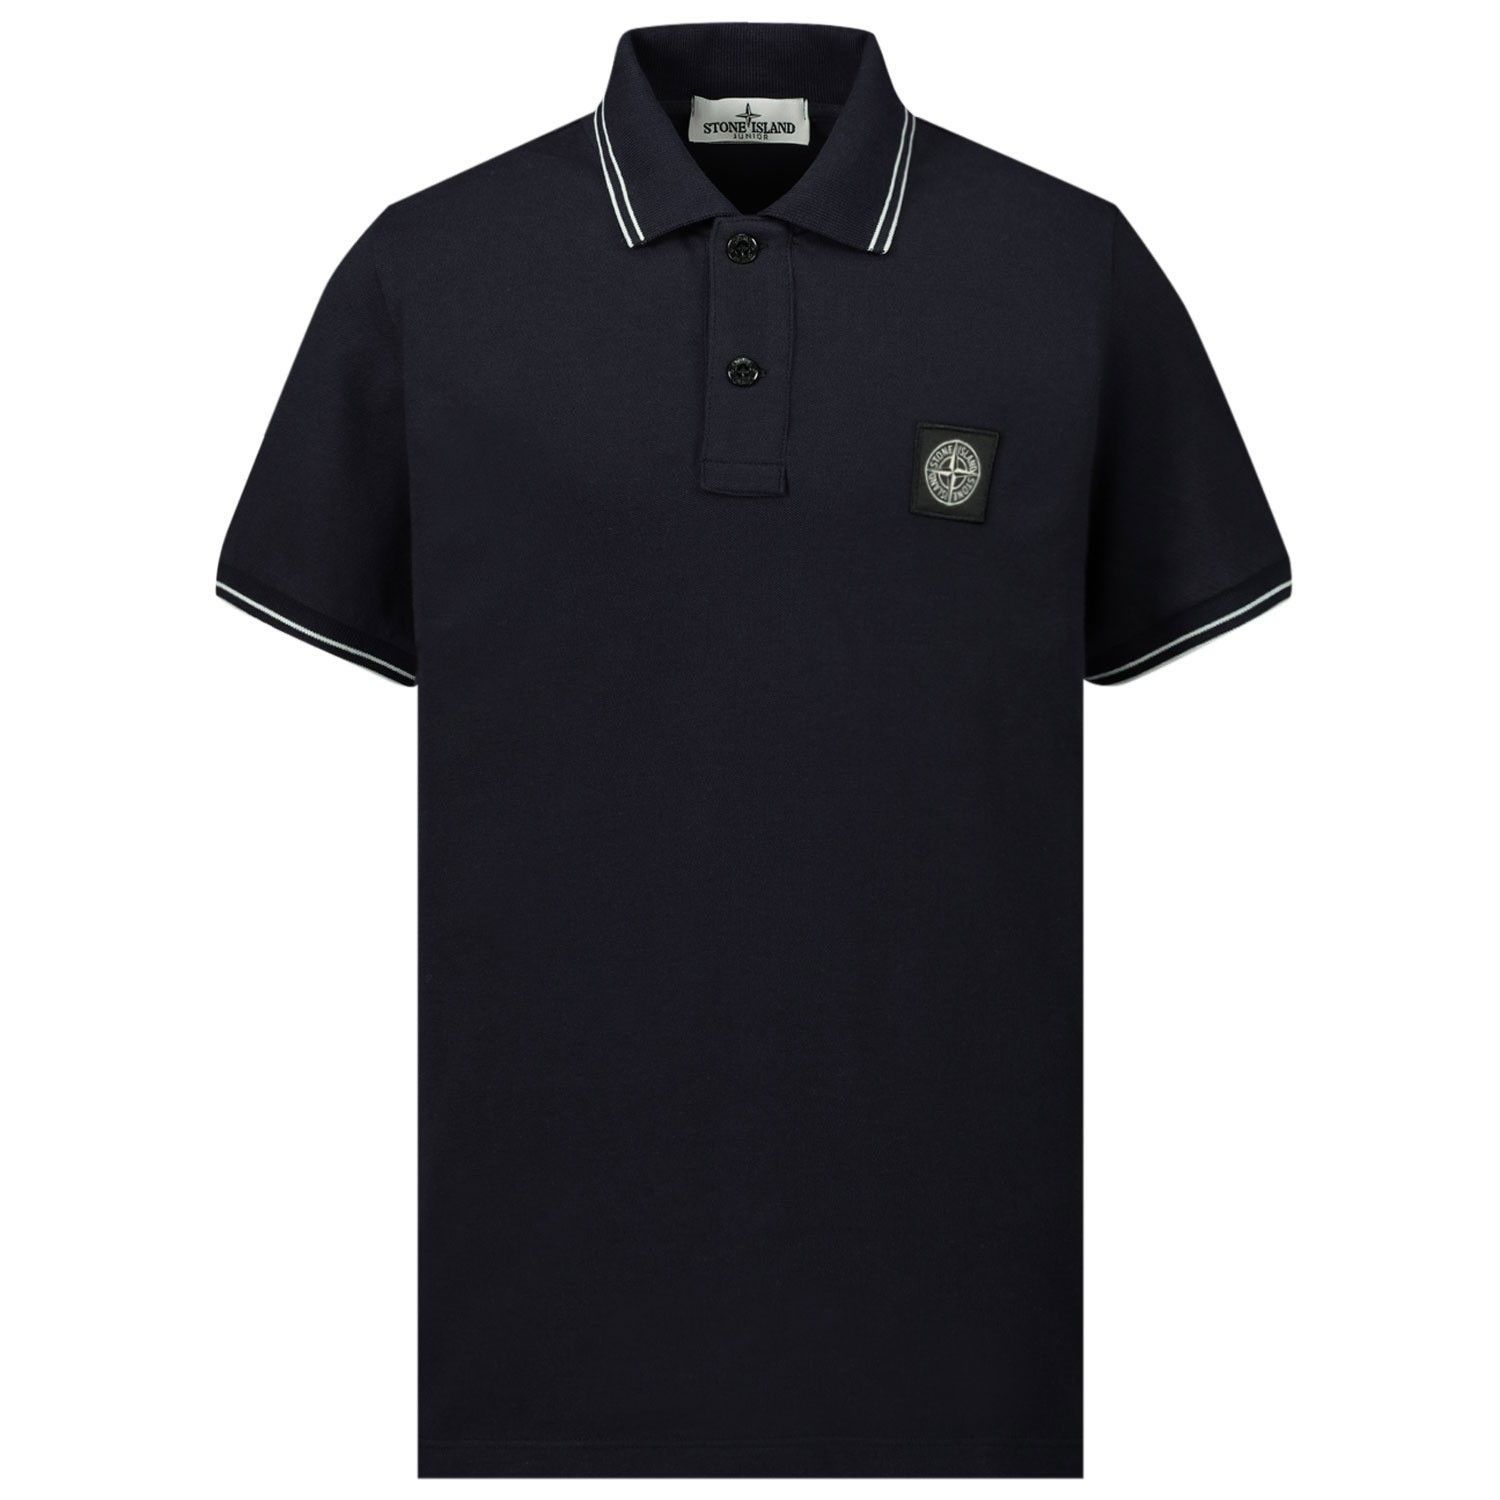 Picture of Stone Island MO731621348 kids polo shirt navy